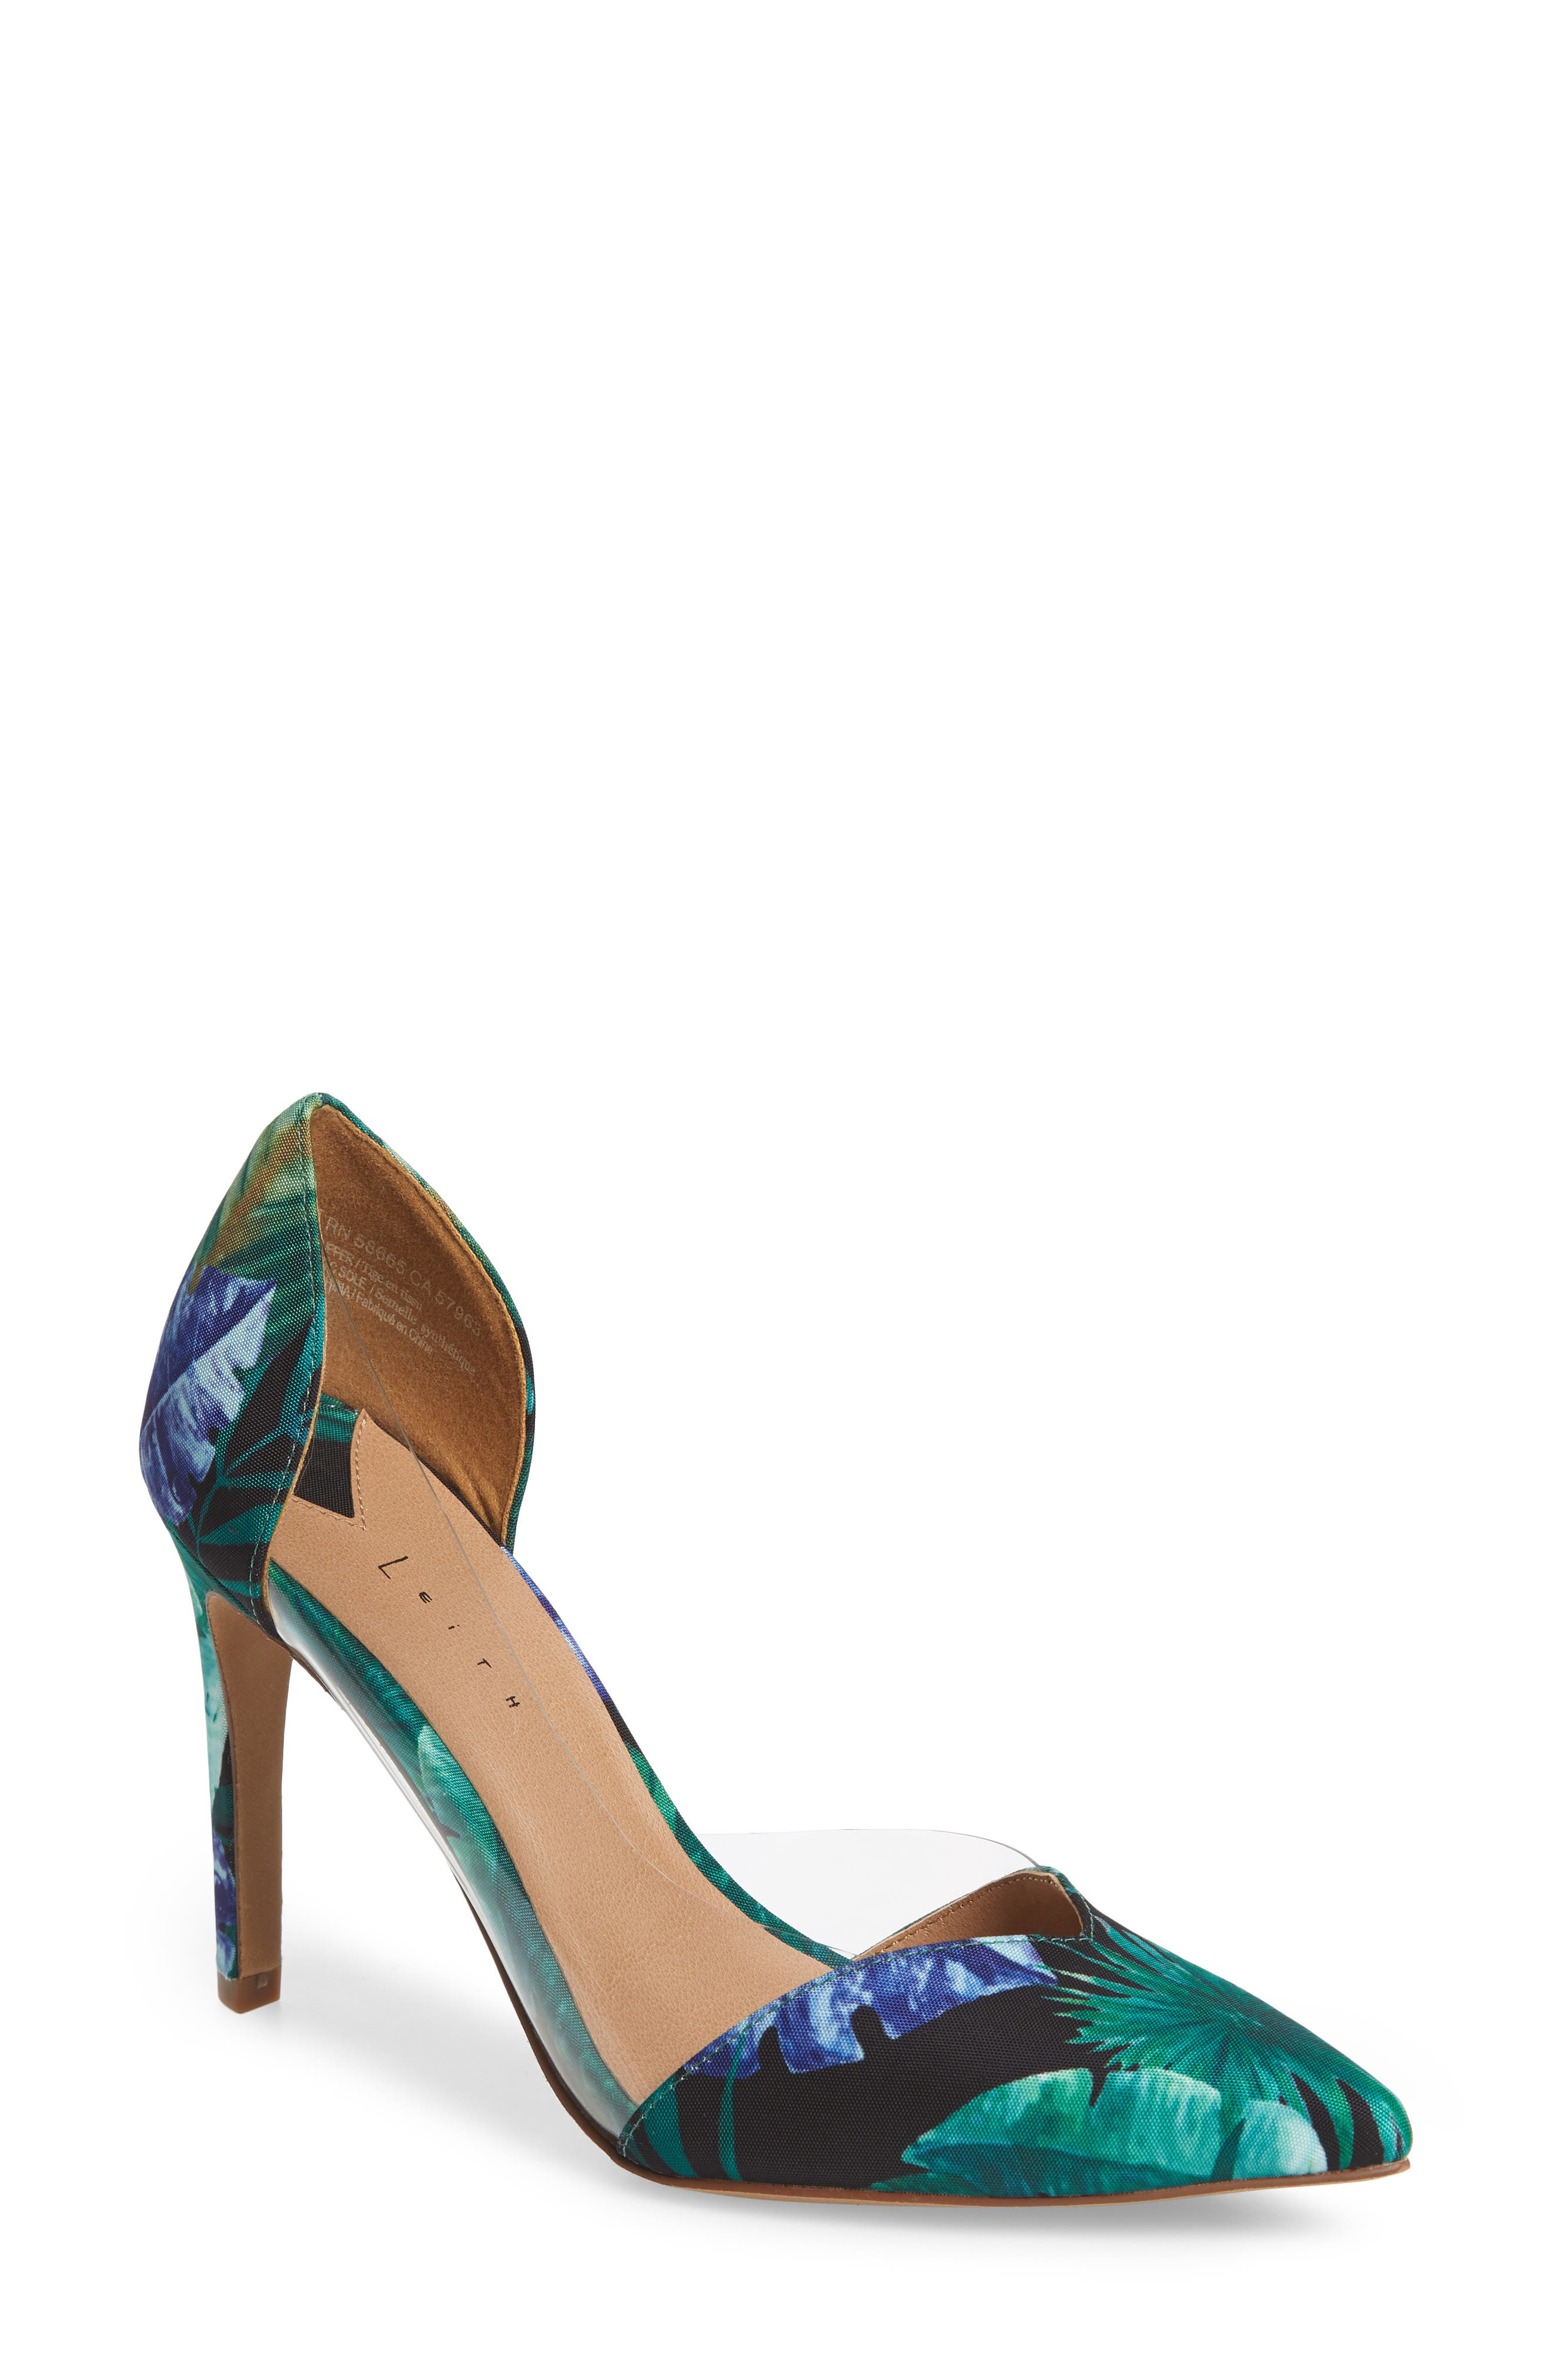 Parker Clear d'Orsay Pump,                         Main,                         color, Green Multi Fabric Print